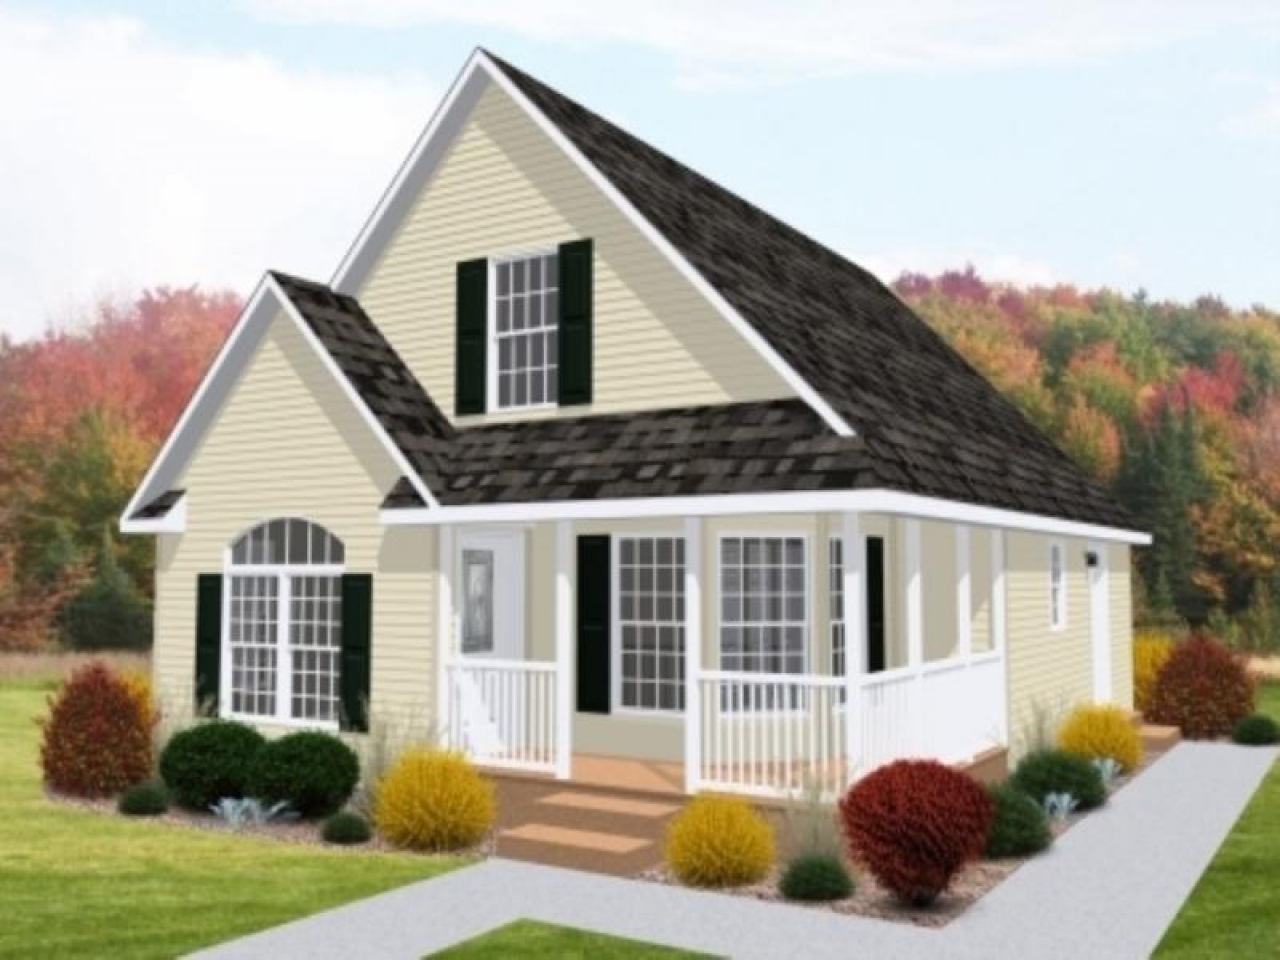 Home Design Ideas For Small Homes: Small Modular Homes Floor Plans Modular Cottage Homes